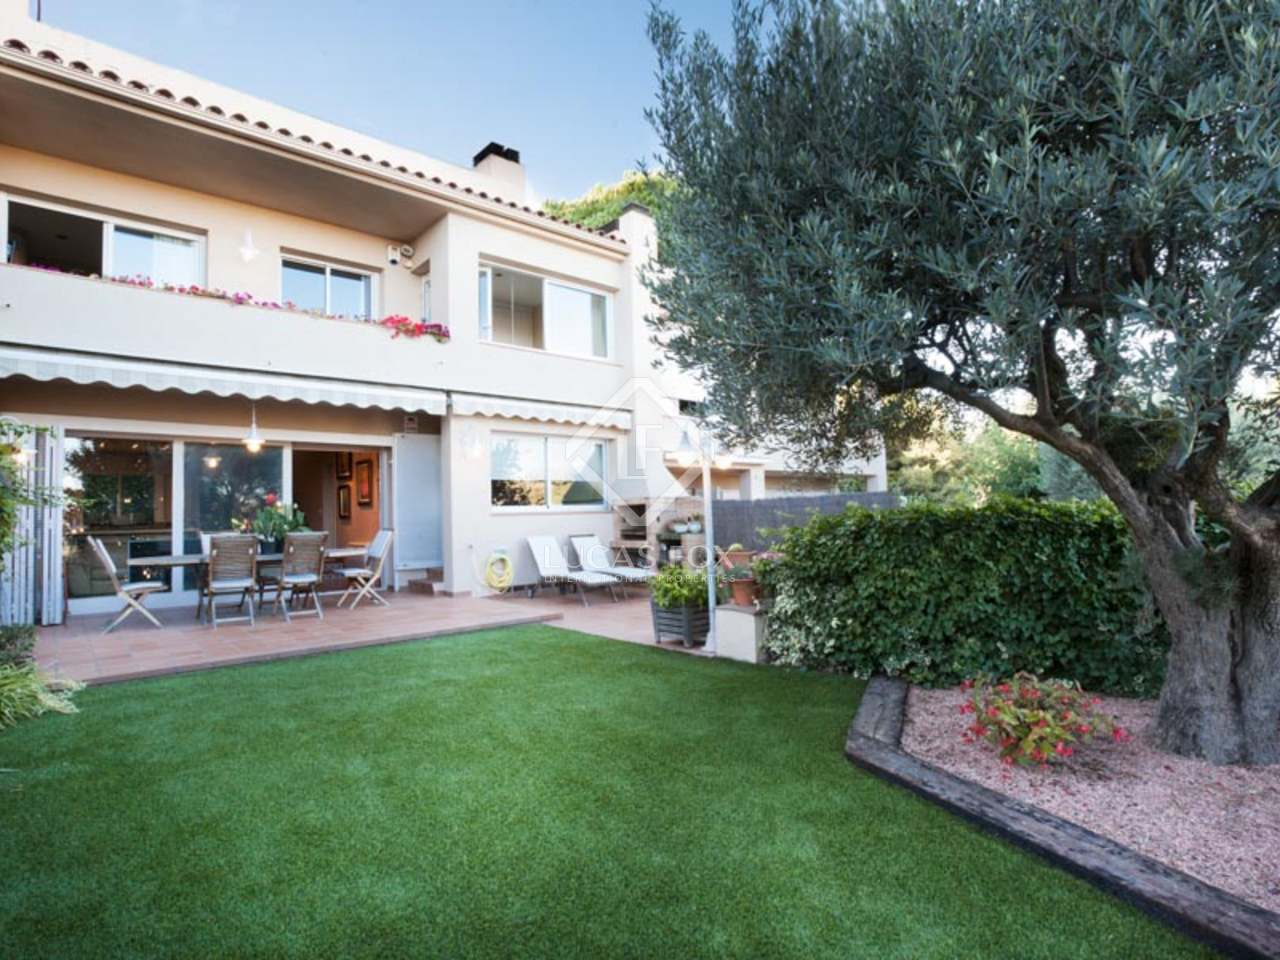 5 bedroom townhouse for sale near the centre of alella for 5 bedroom townhouse